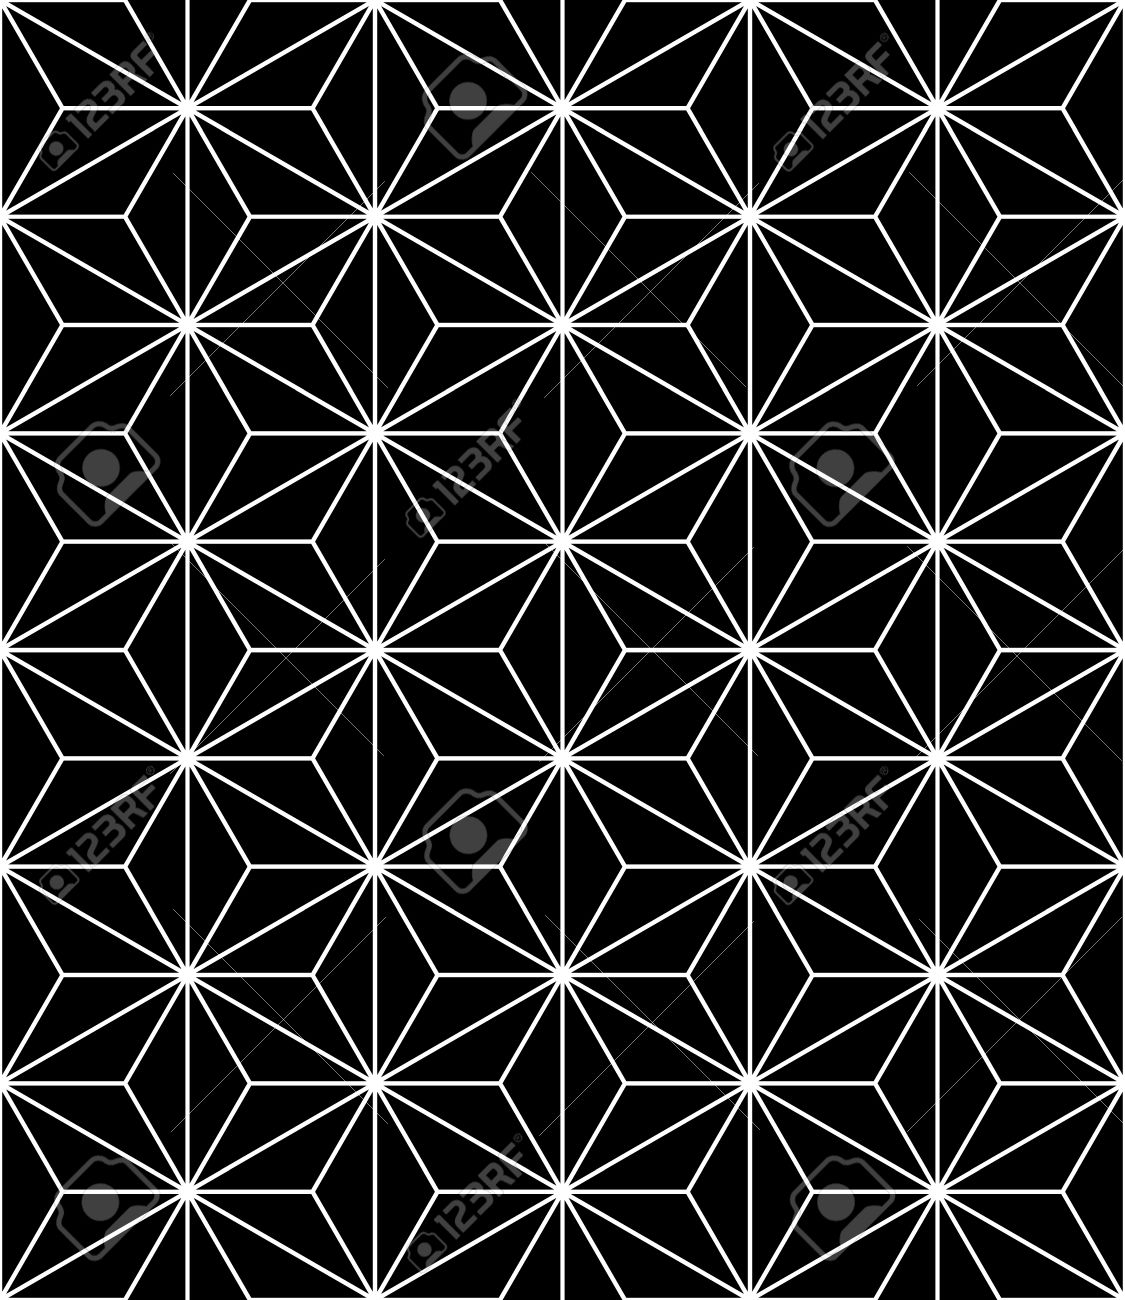 modern seamless sacred geometry pattern, black and white abstract geometric background - 46815453